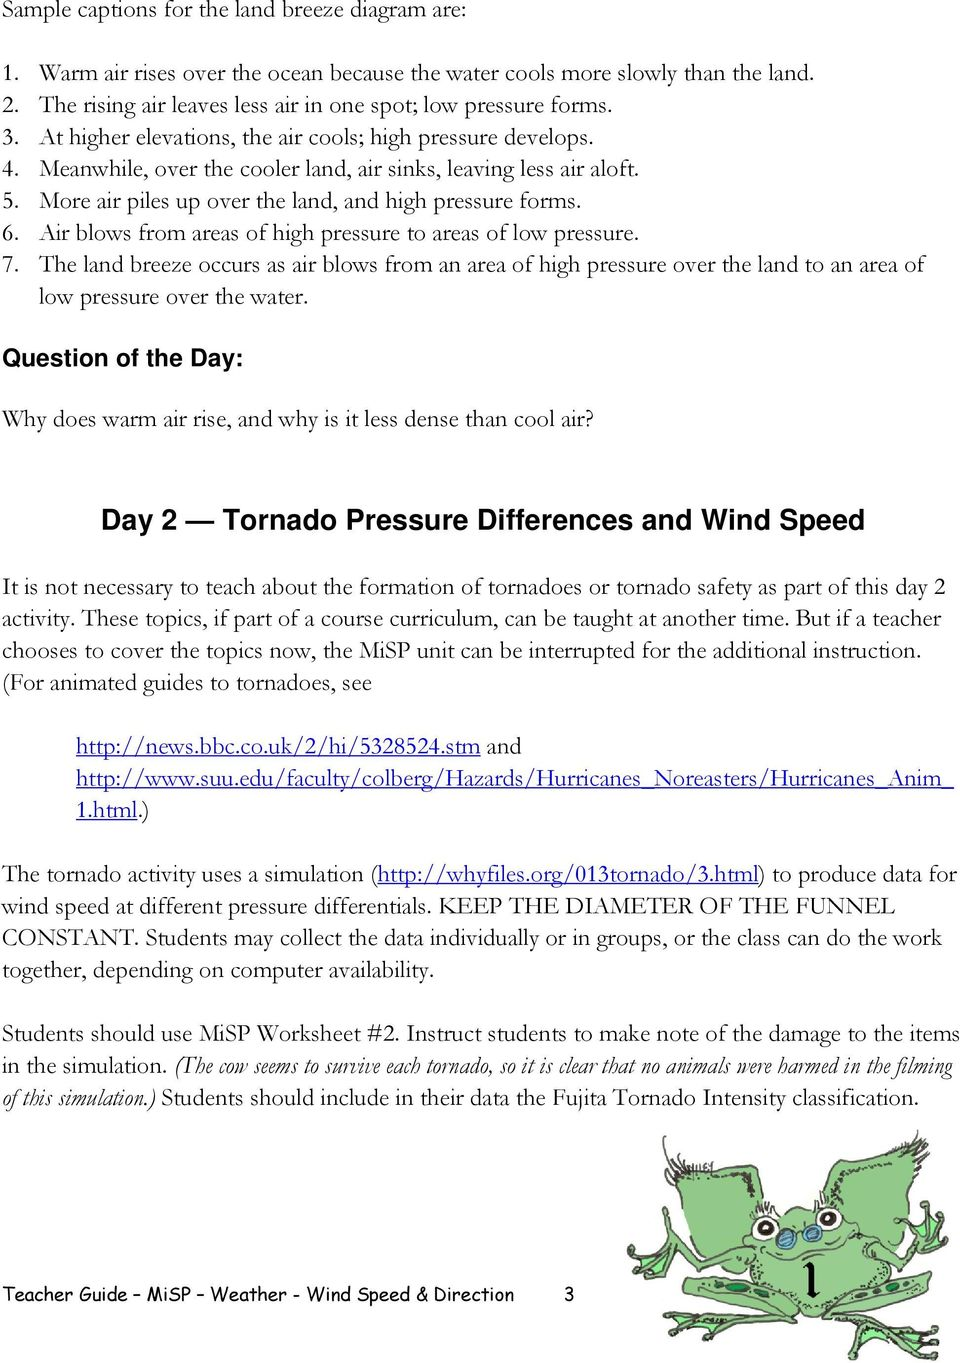 MiSP WEATHER WIND SPEED AND DIRECTION Teacher Guide, L1 L3